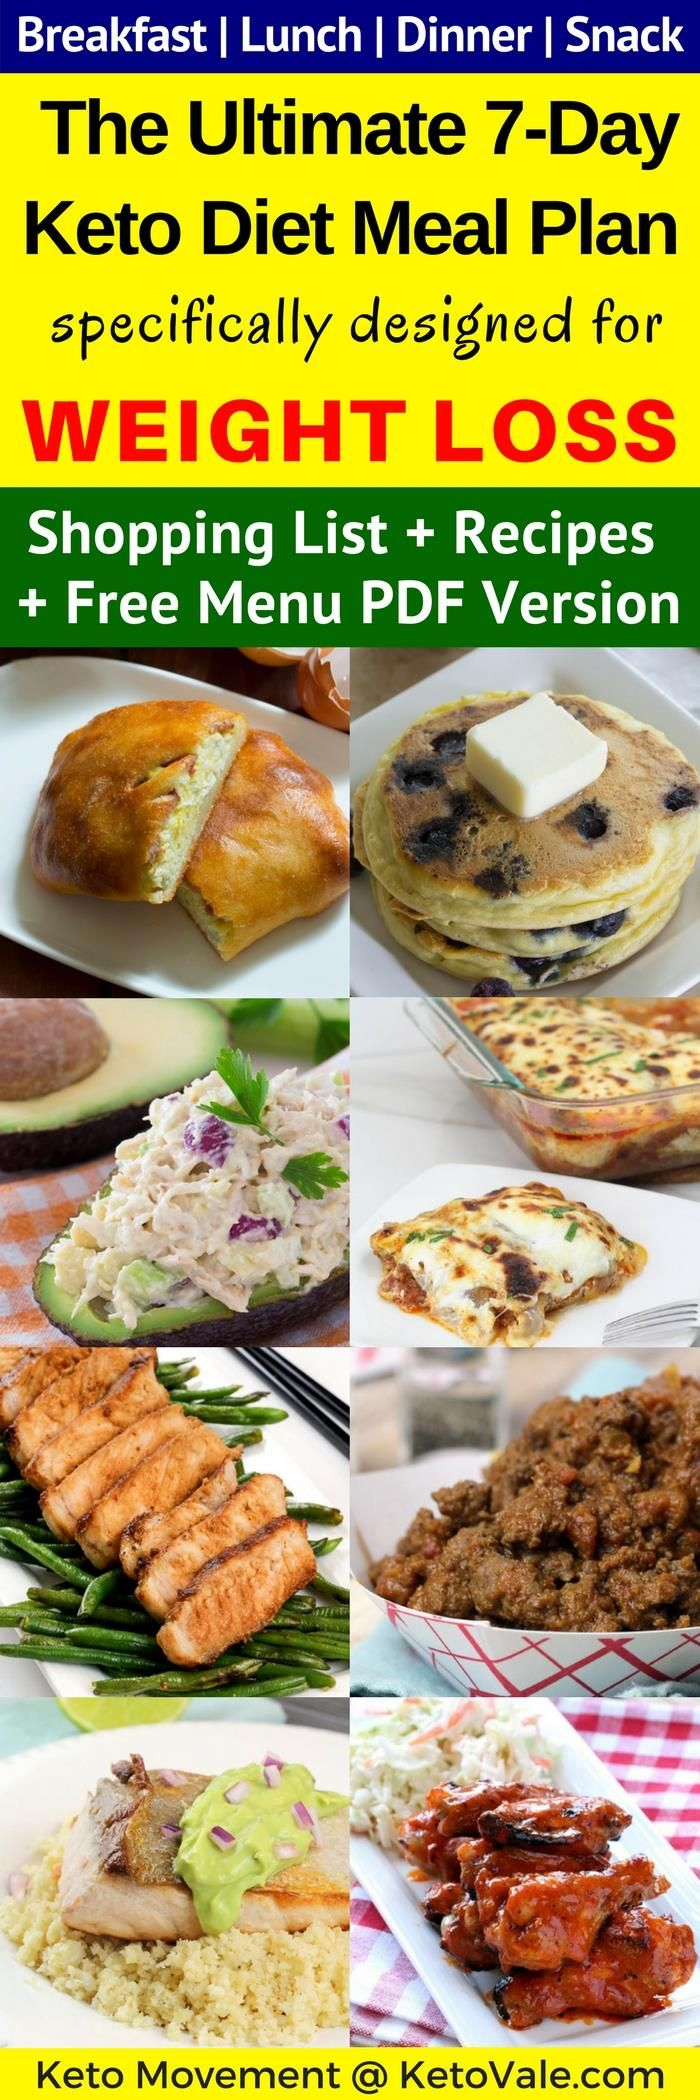 Check Meal Plan #2 on this page for the Ultimate 7-Day Keto Diet Meal Plan Specifically Designed For Weight Loss